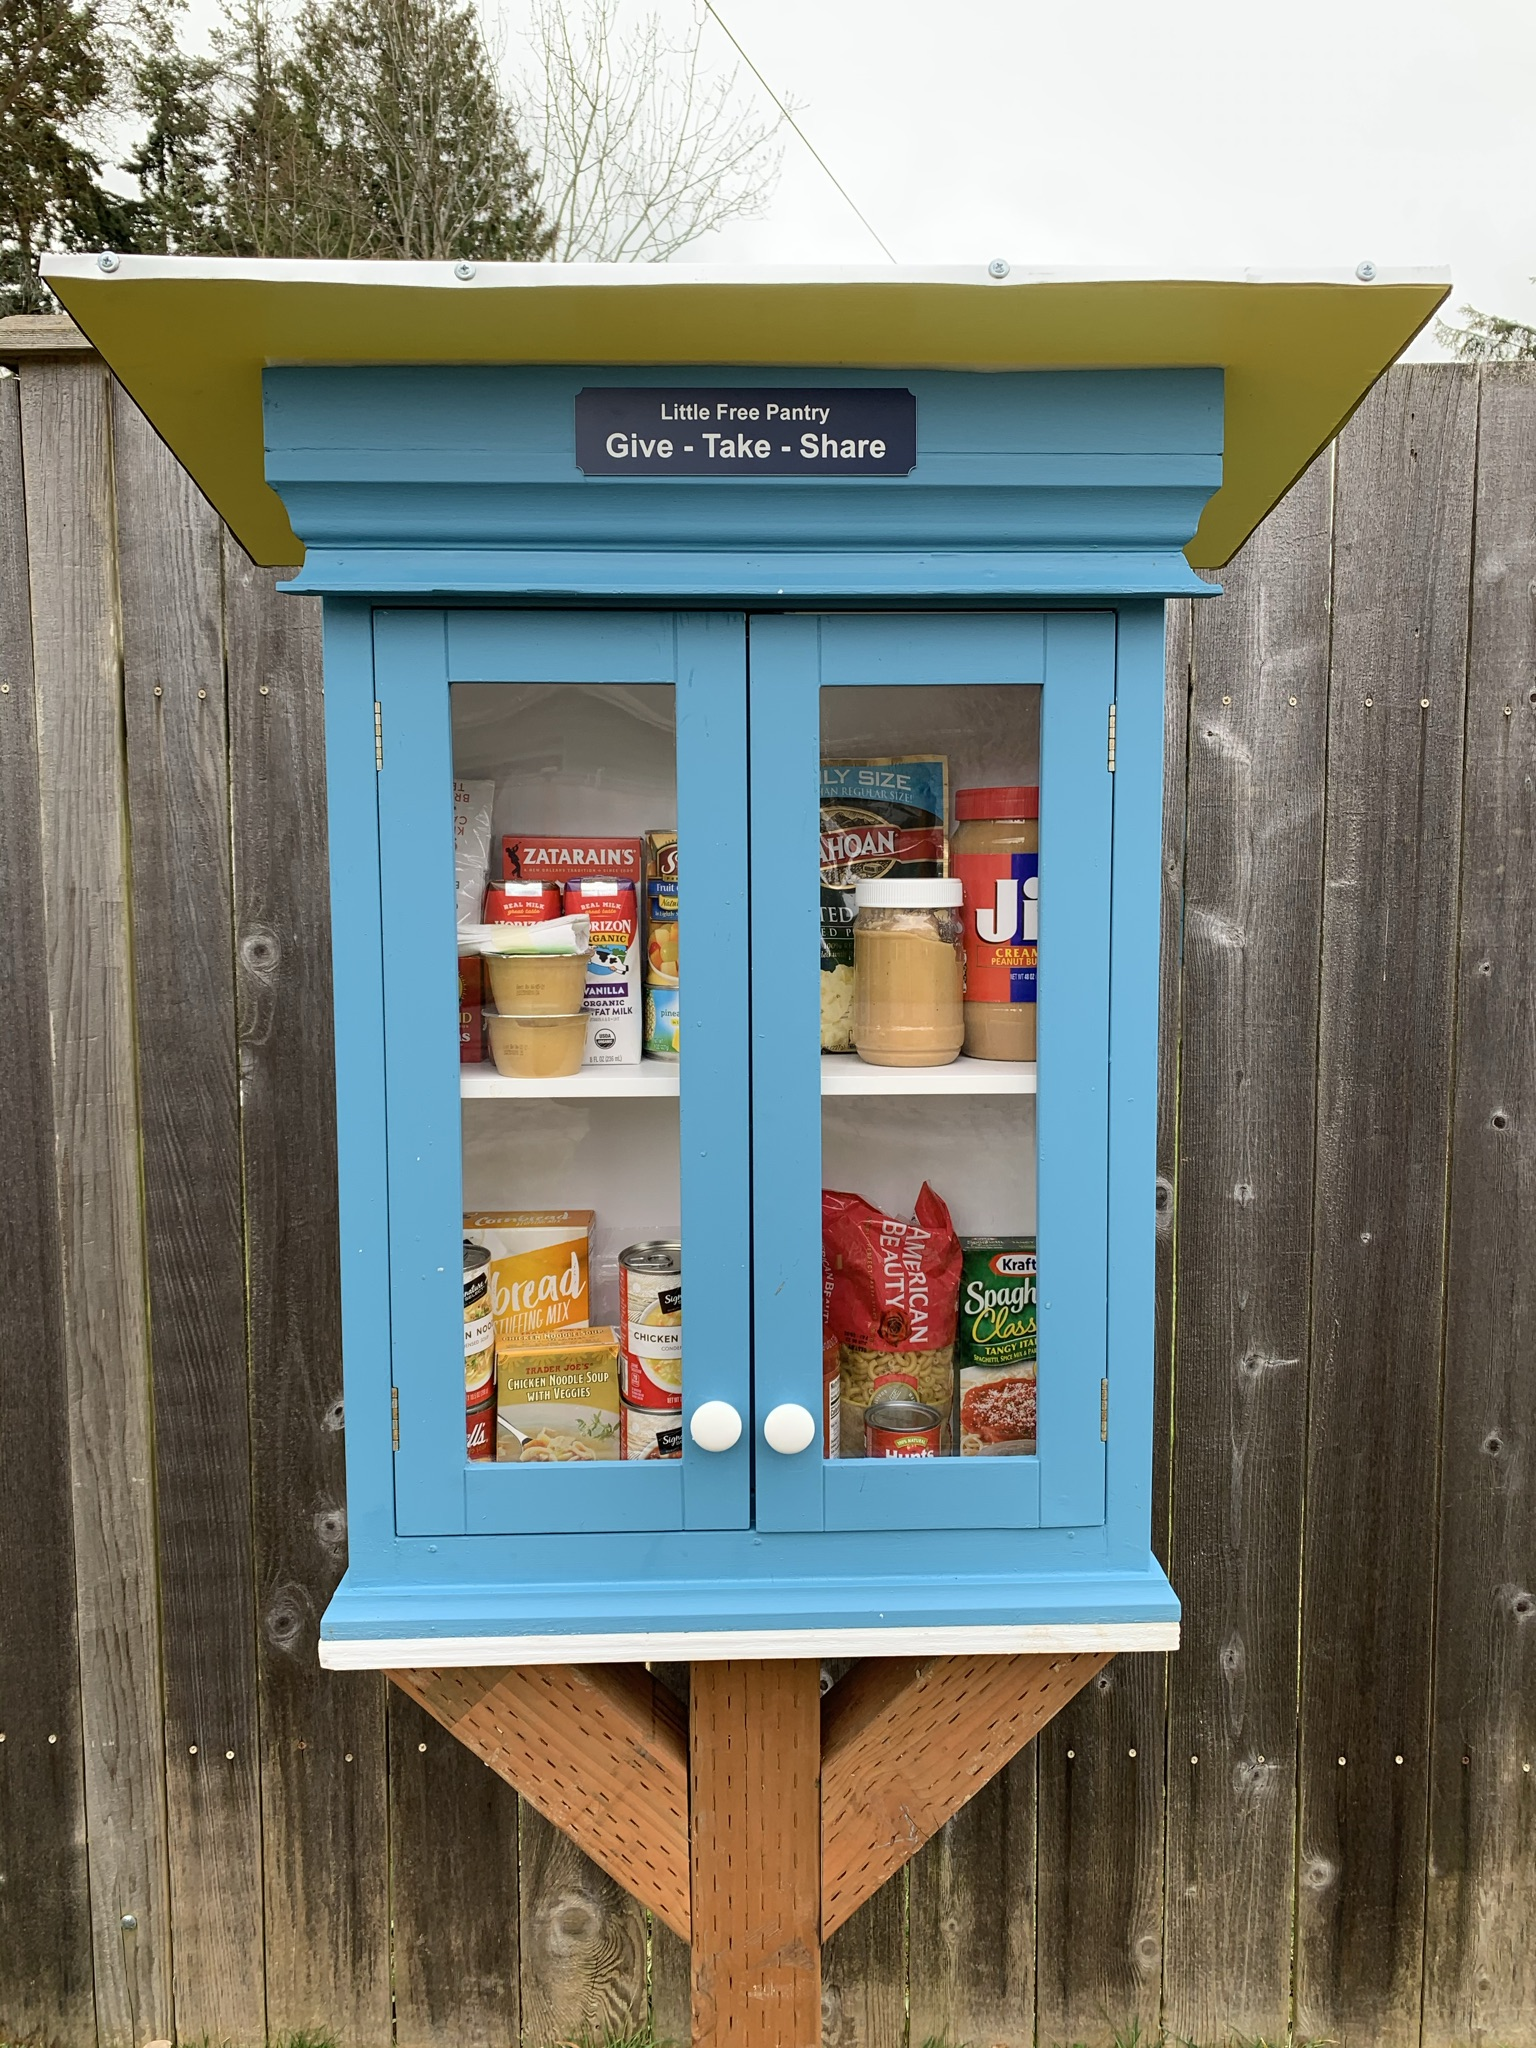 Meridian Little Free Pantry Photo 1